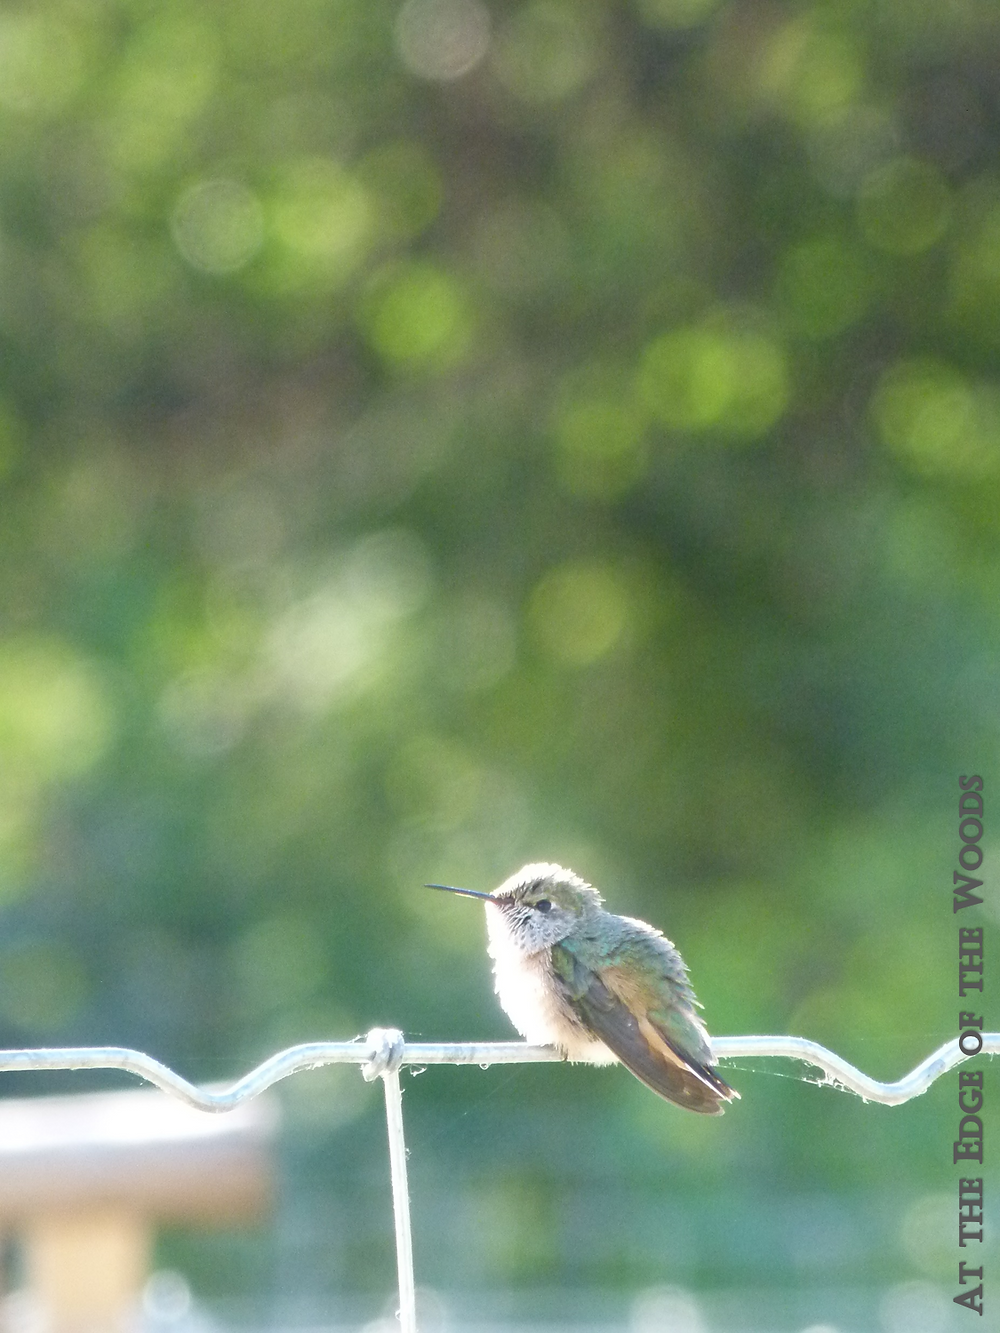 hummingbird perching on the wire